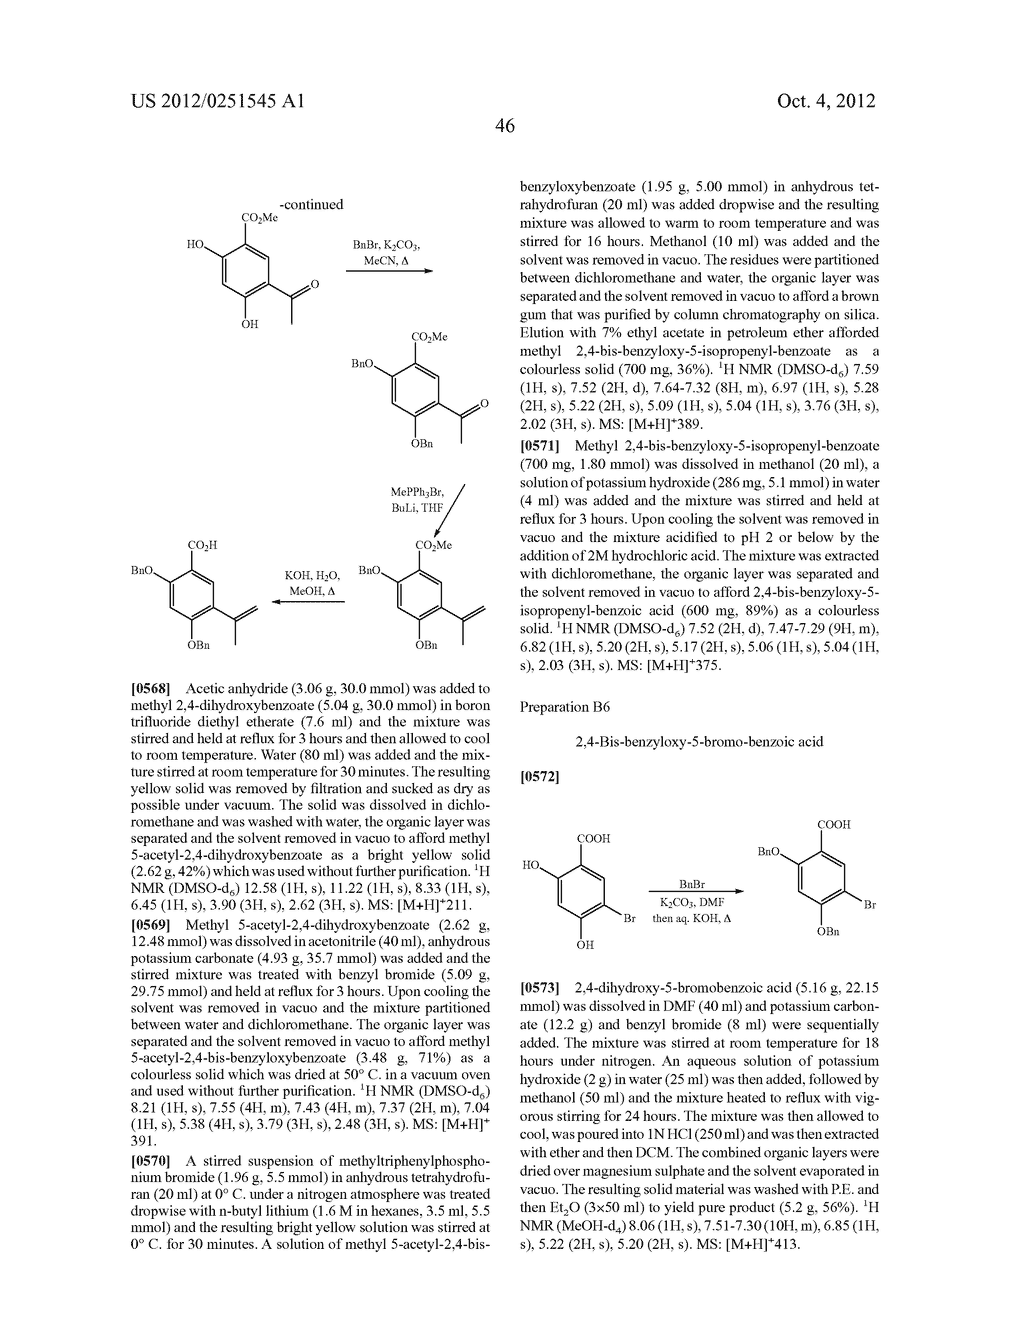 Therapeutic Combinations Of Hydroxybenzamide Derivatives As Inhibitors Of     HSP90 - diagram, schematic, and image 47